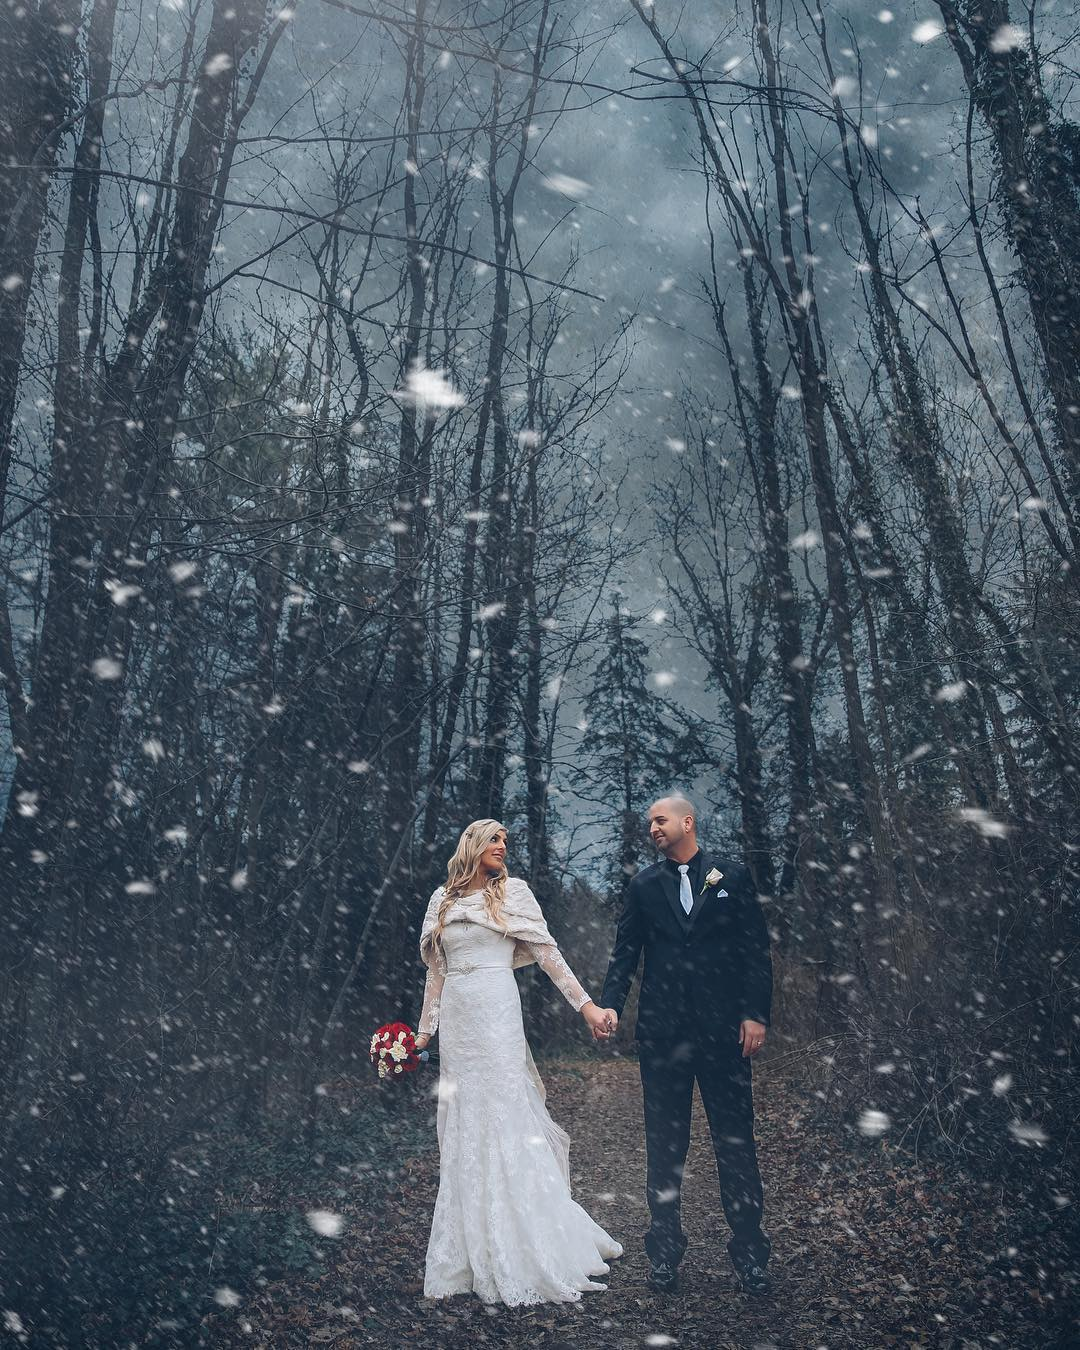 Bride and groom posing while holding hands as the snow falls